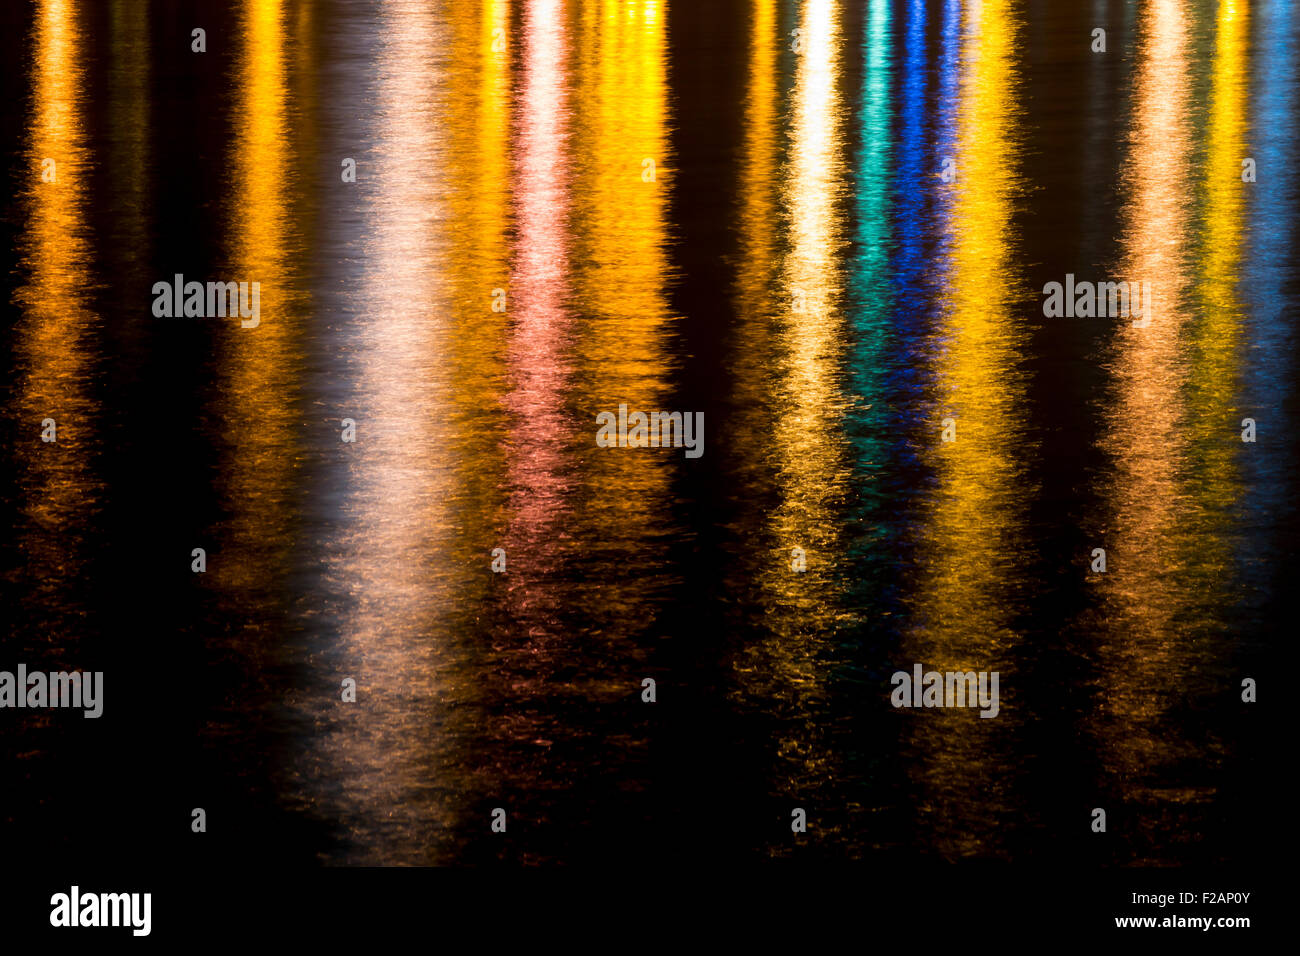 light reflections on the water - Stock Image